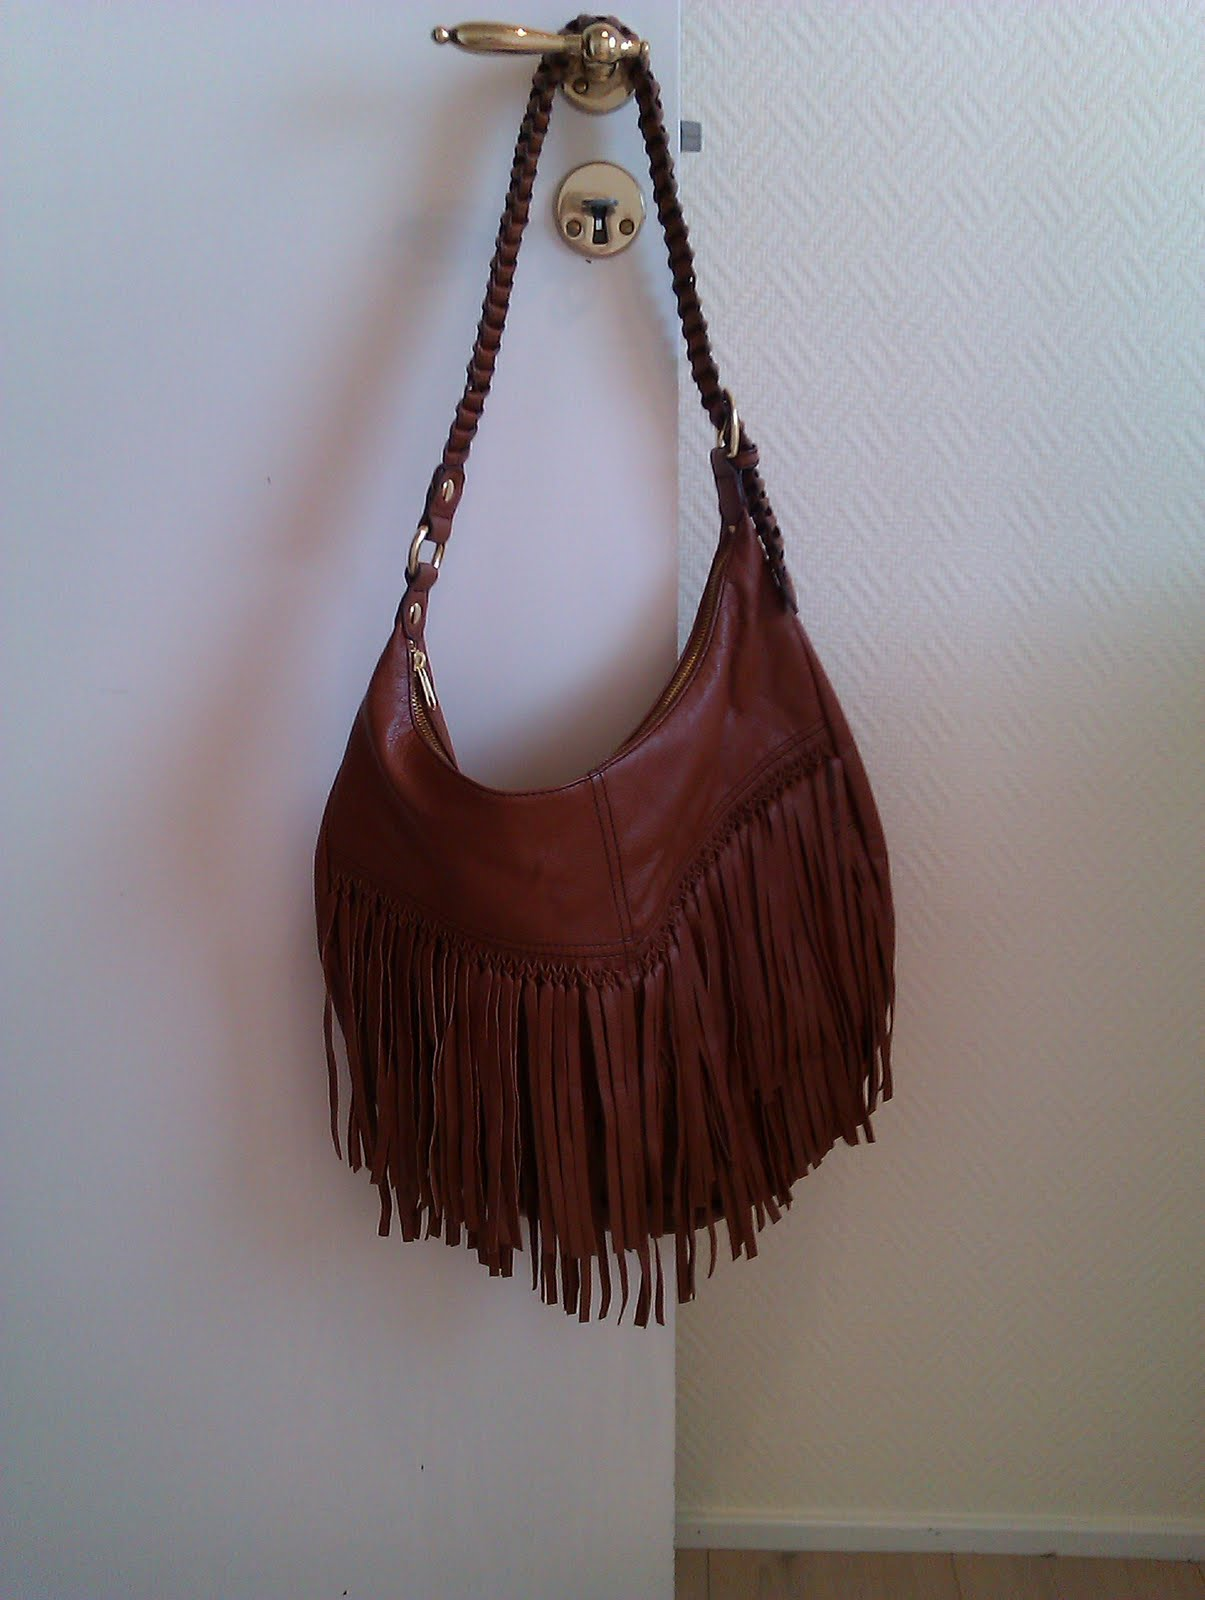 fringe bags for saleTr  s Tr  s Cool et Tr  s Tr  s Chic  Saturdays shopping results ywgle8eA